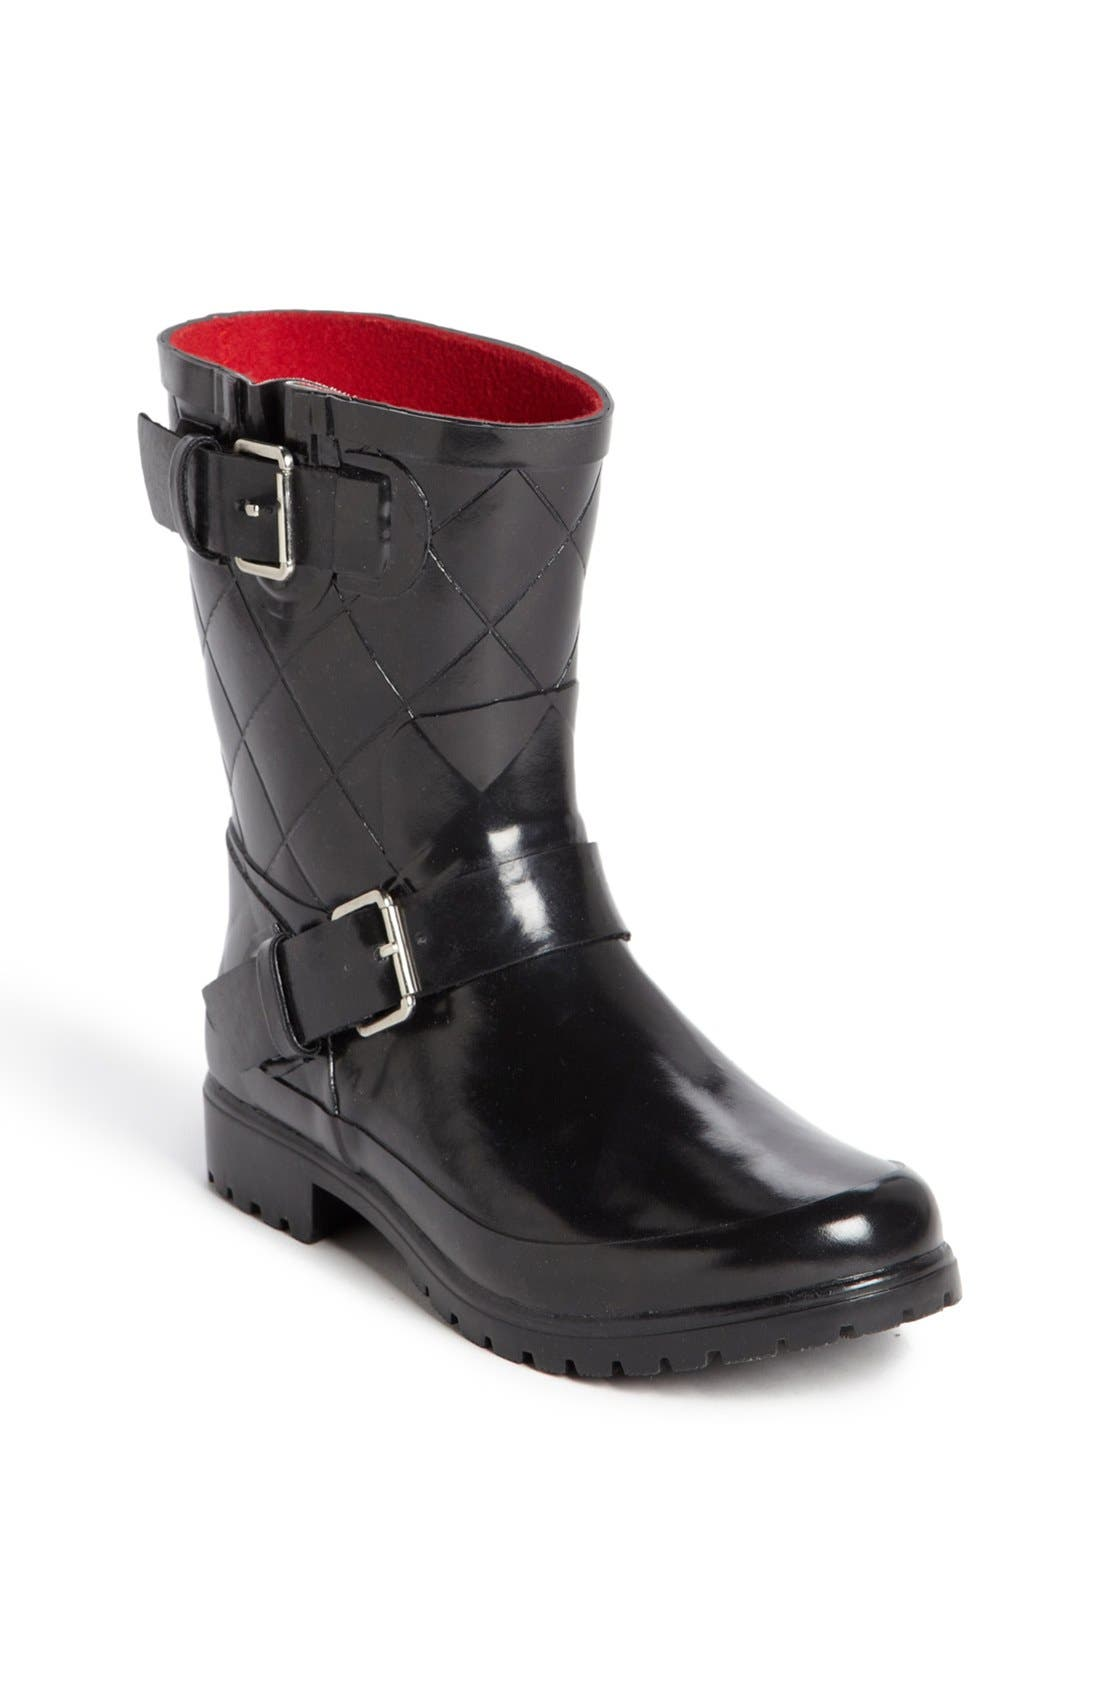 Main Image - Sperry Top-Sider® 'Falcon' Rain Boot